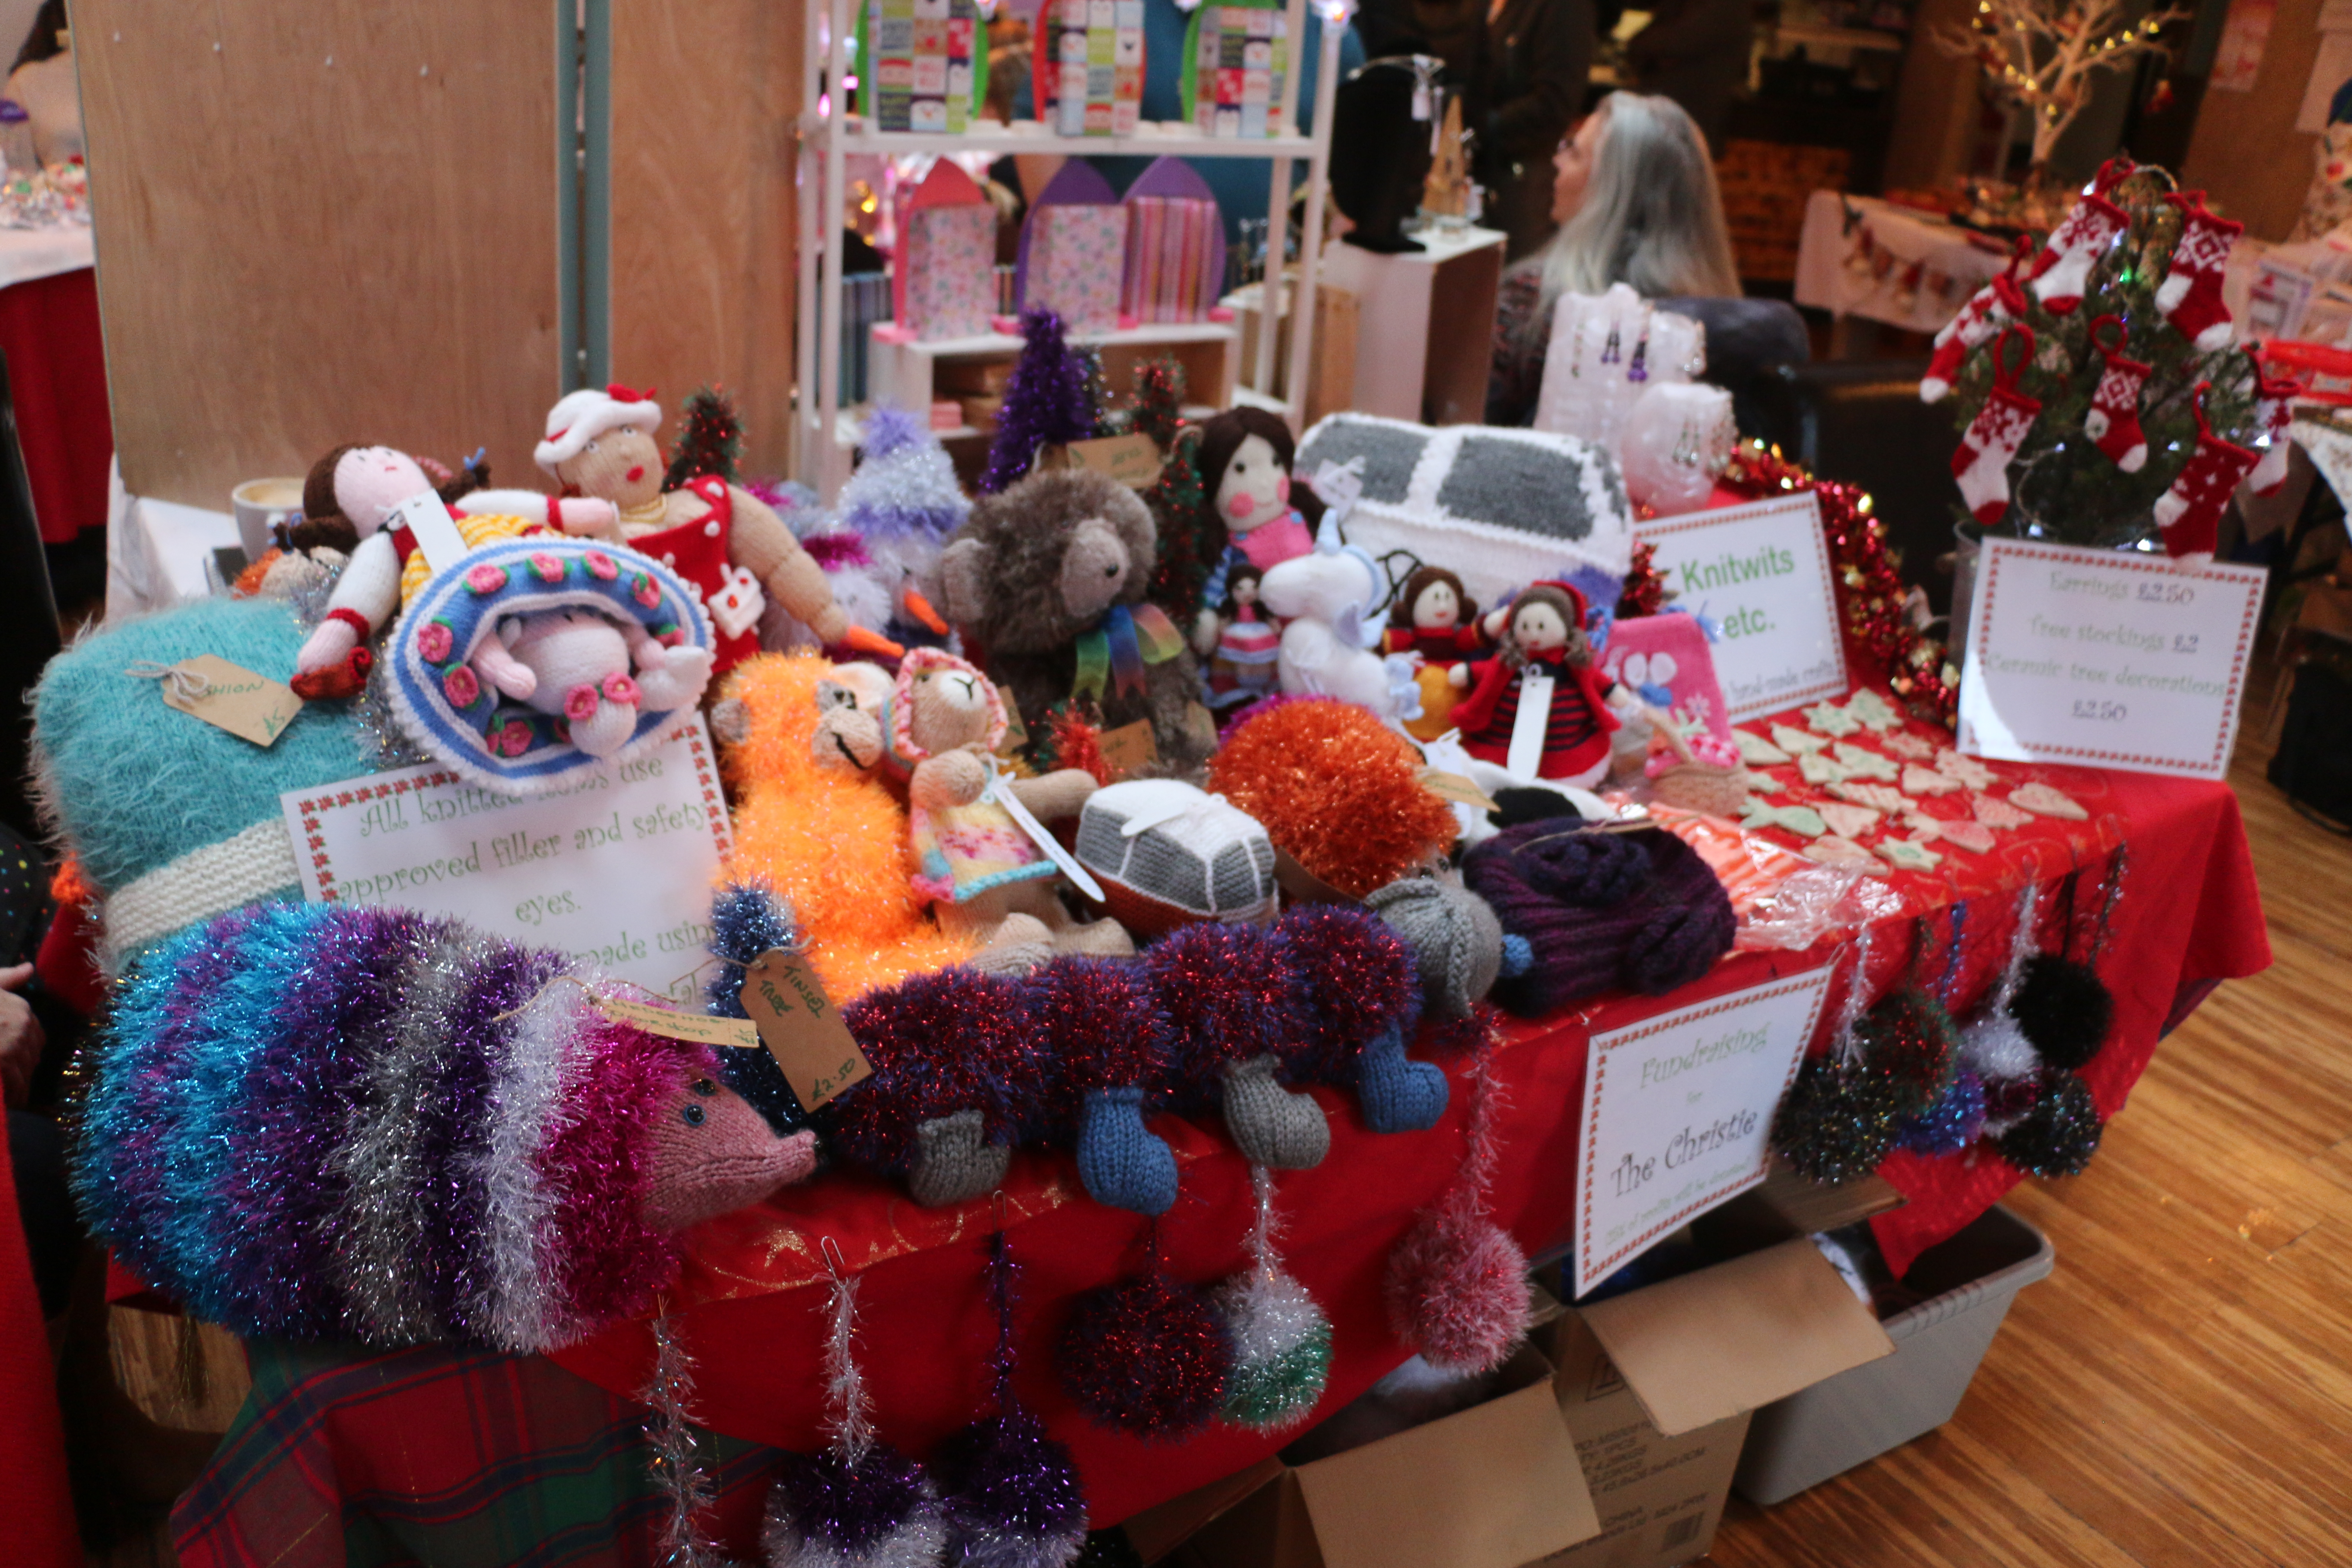 Stall of Knitwits full of knitted toys and fashion accessories